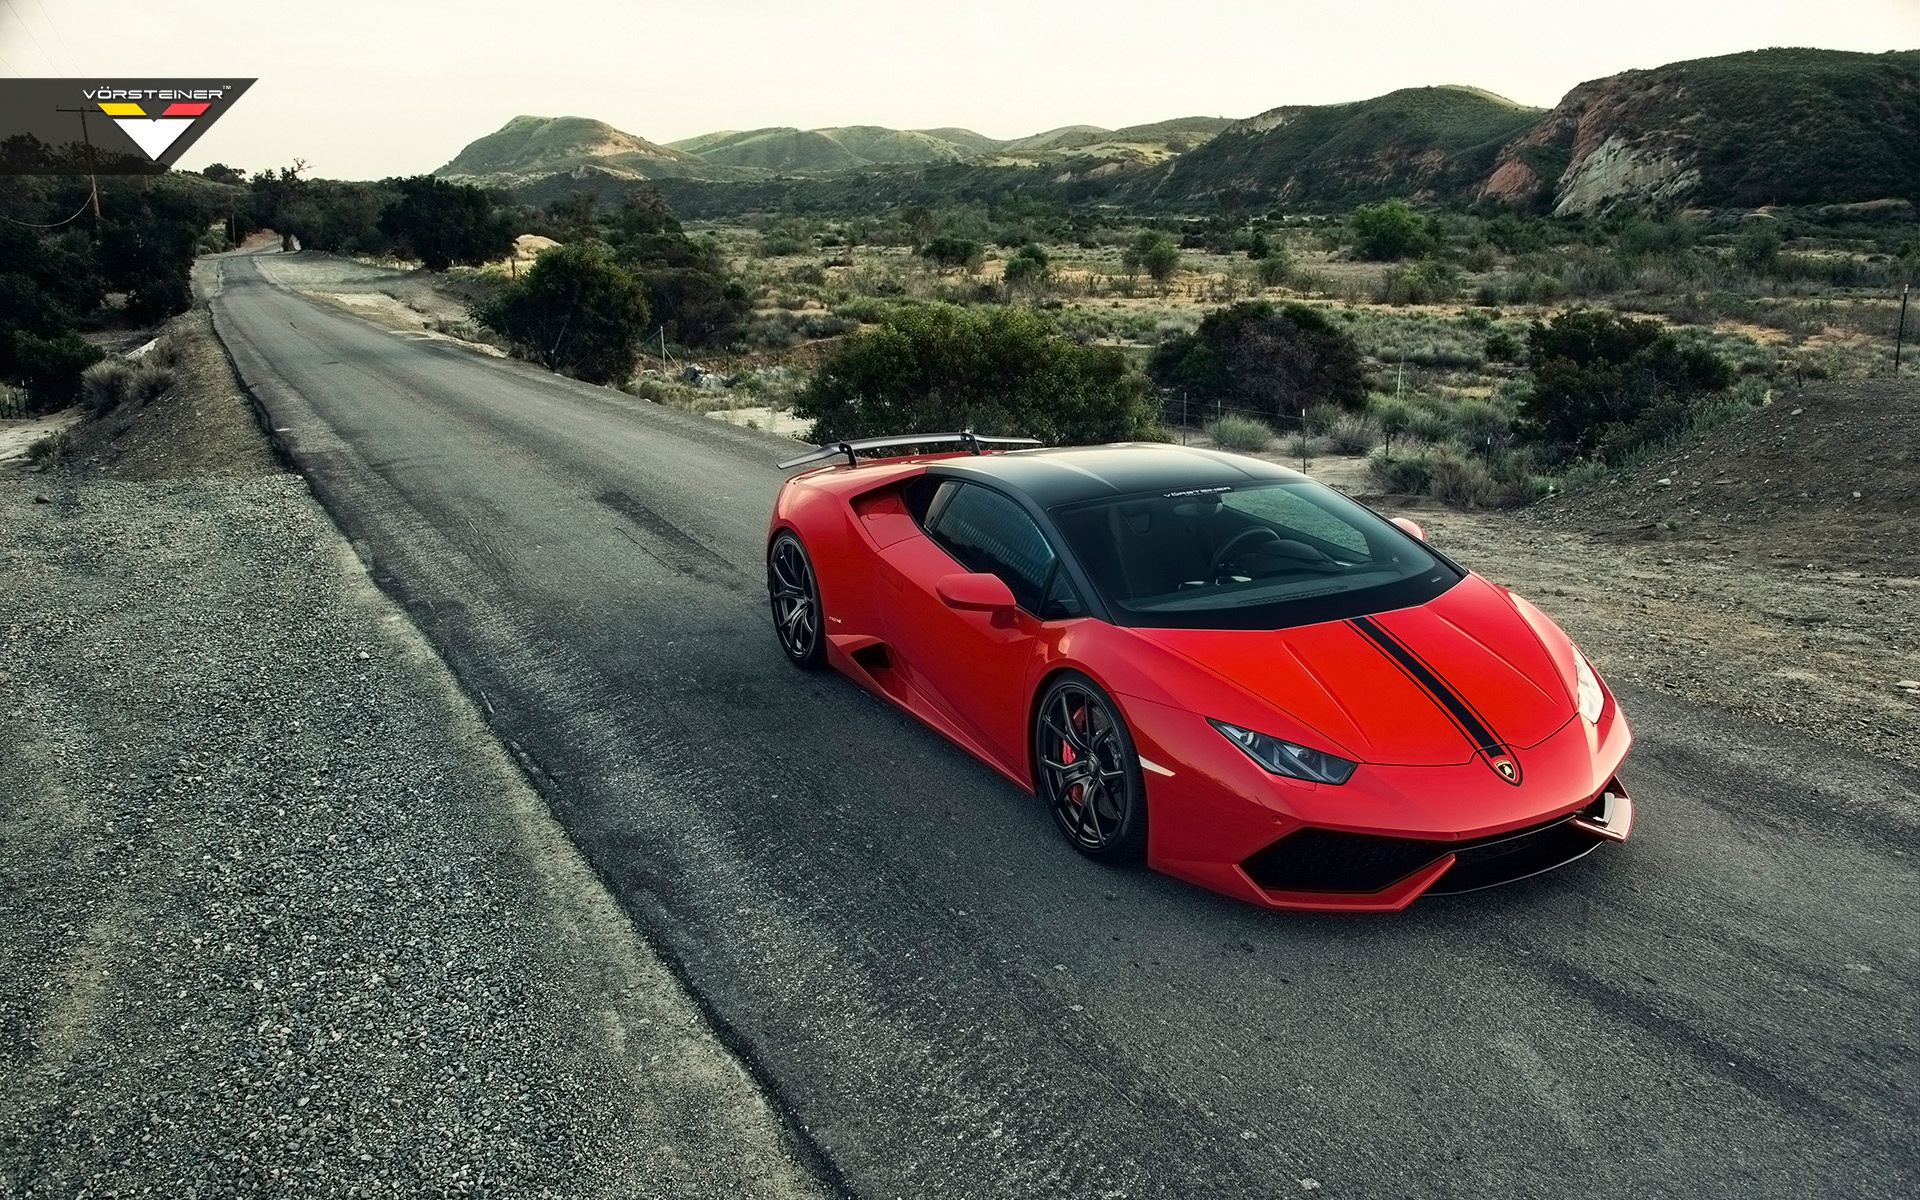 lamborghini huracan verona edizione 2 wallpaper hd car wallpapers - Lamborghini Huracan Wallpaper